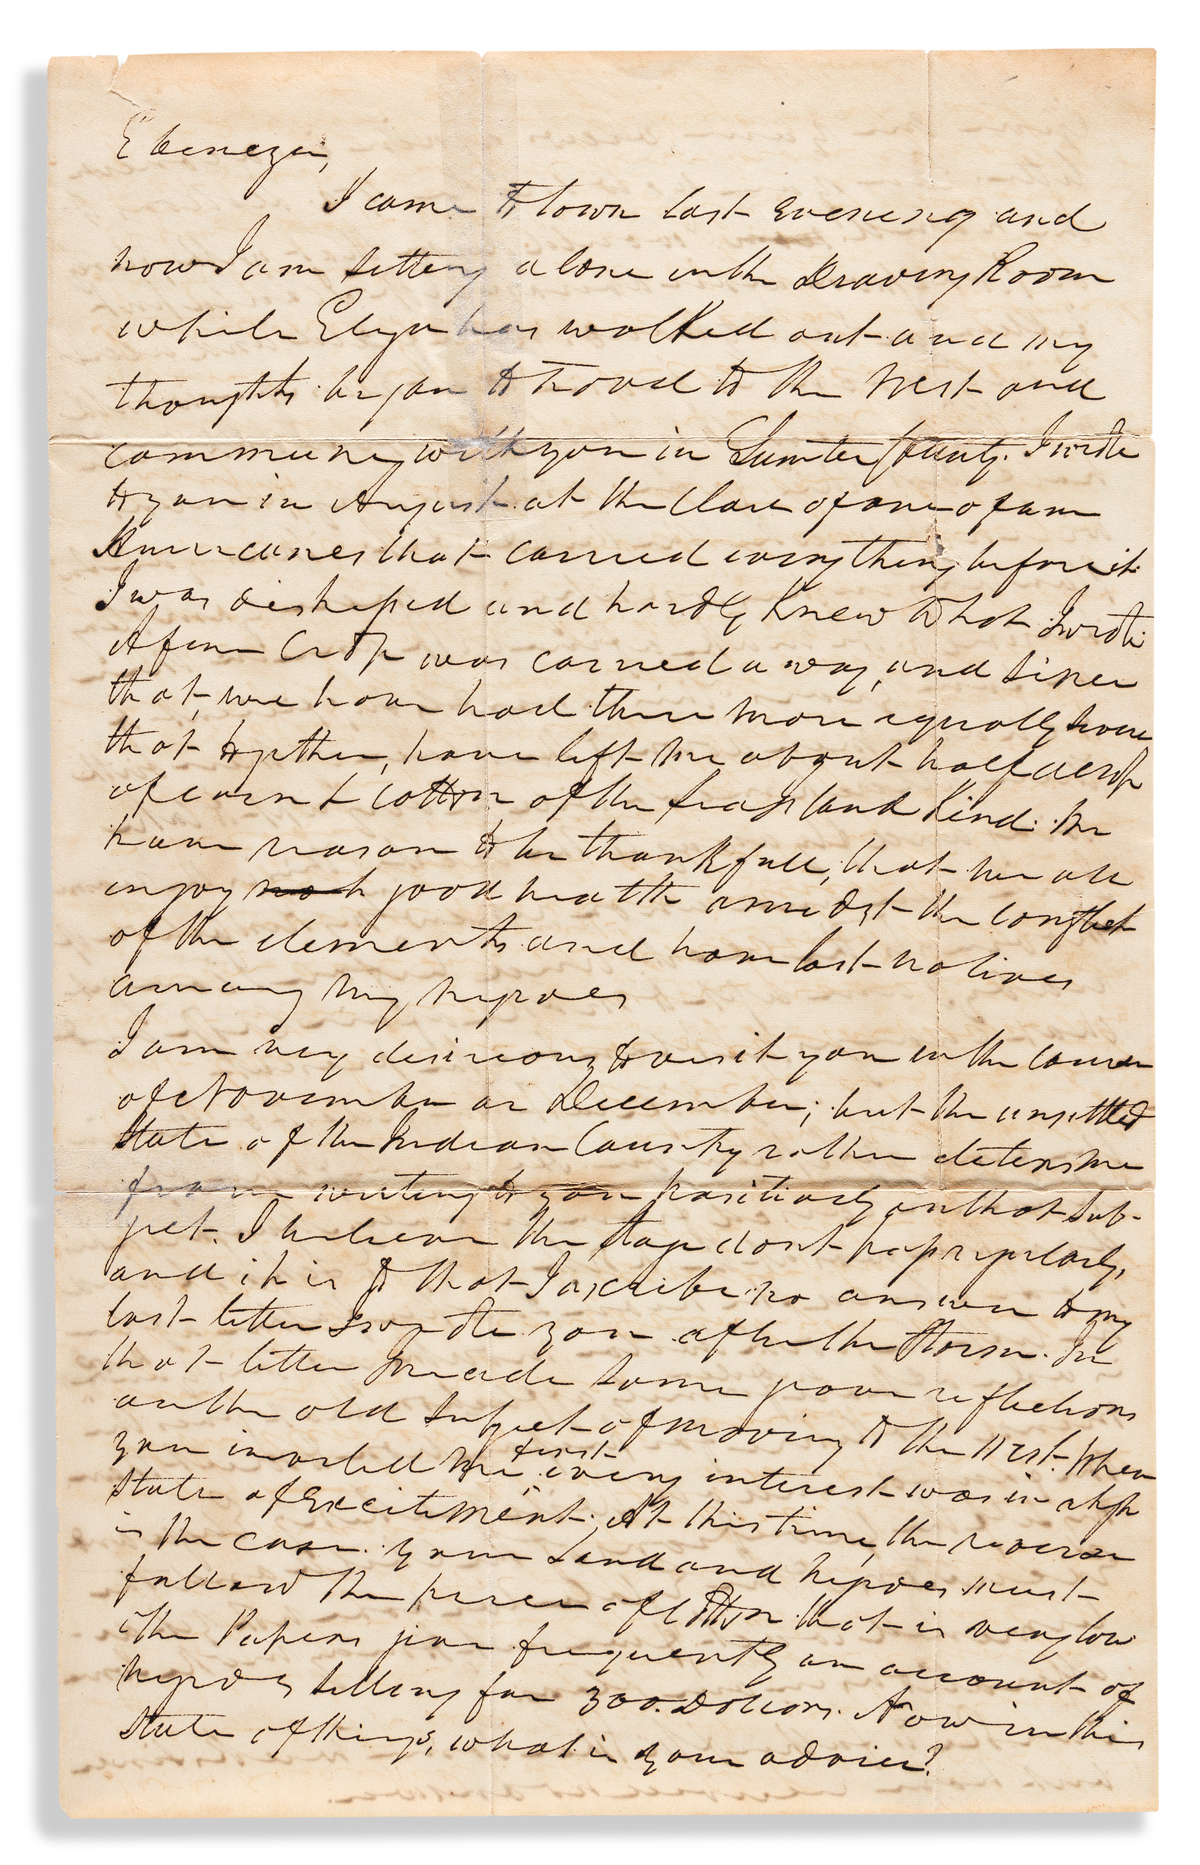 (AMERICAN INDIANS.) Robert H. Pettigrew. Letter by a Georgia planter discussing the Creek War in Alabama.